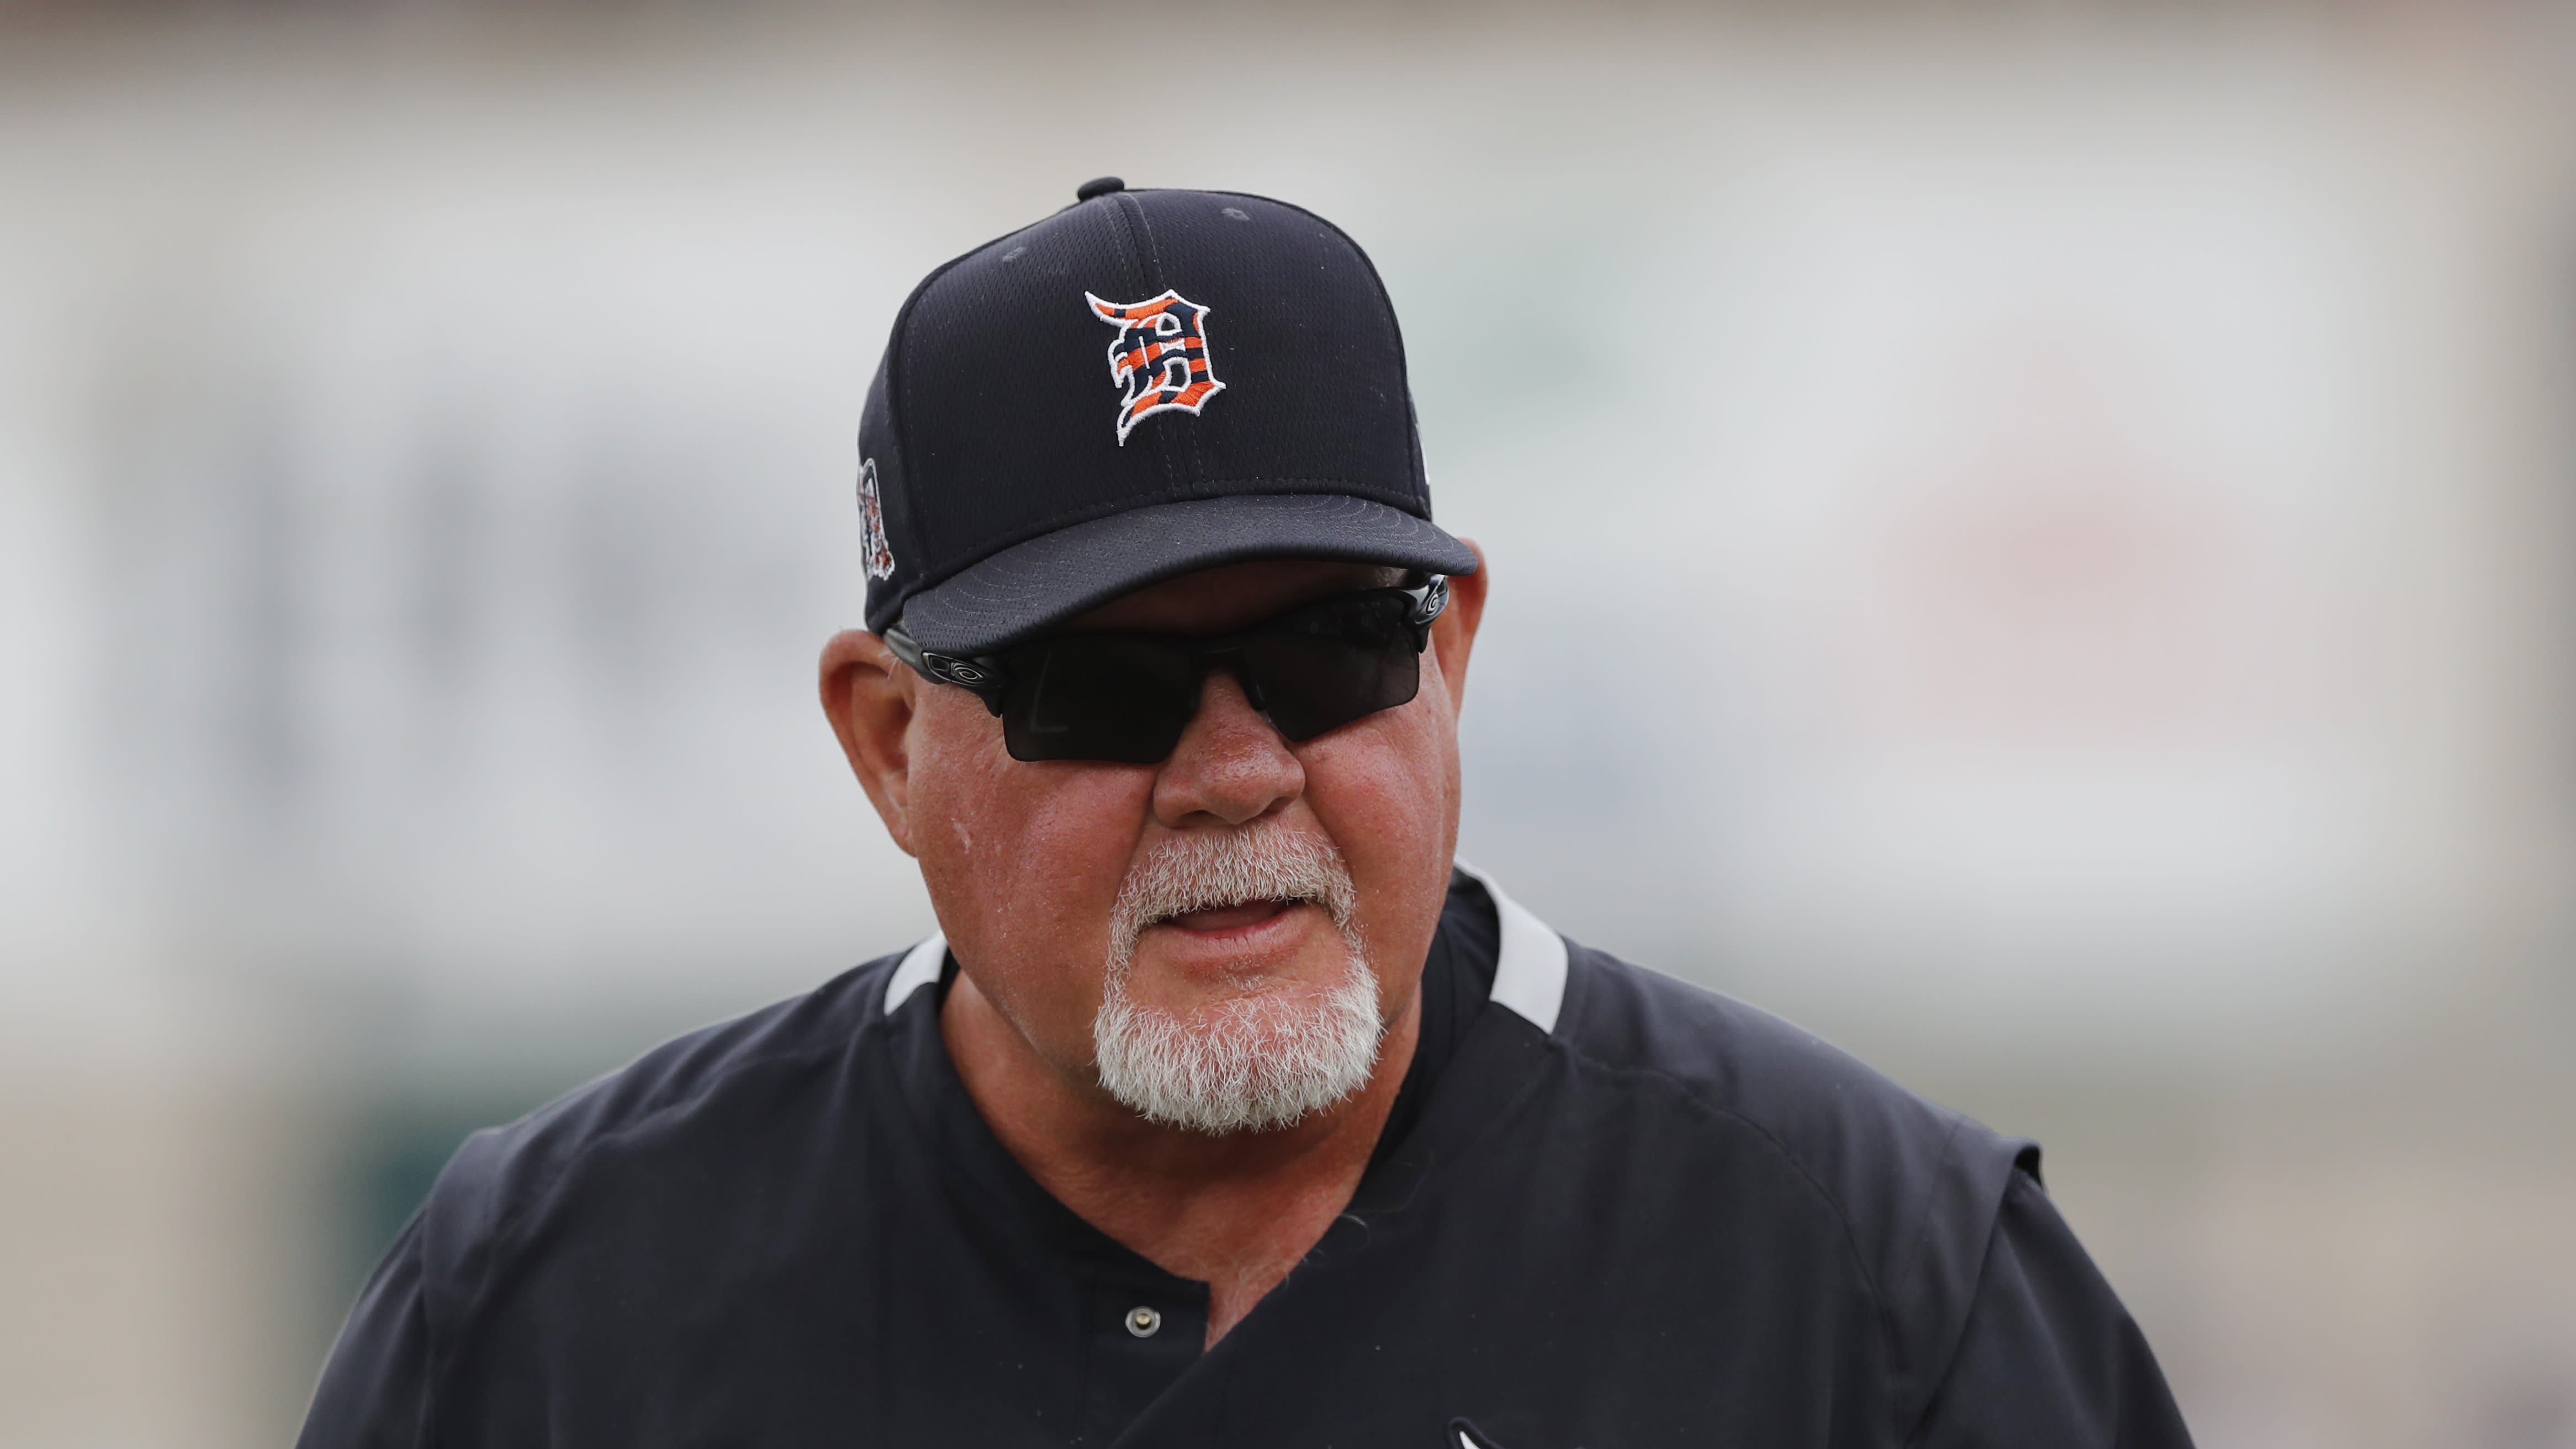 FILE - In this March 5, 2020, file photo, Detroit Tigers manager Ron Gardenhire watches during a spring training baseball game in Lakeland, Fla. Gardenhire announced his retirement prior to Detroit's game against the Cleveland Indians on Saturday, Sept. 19,2020. (AP Photo/Carlos Osorio, File)